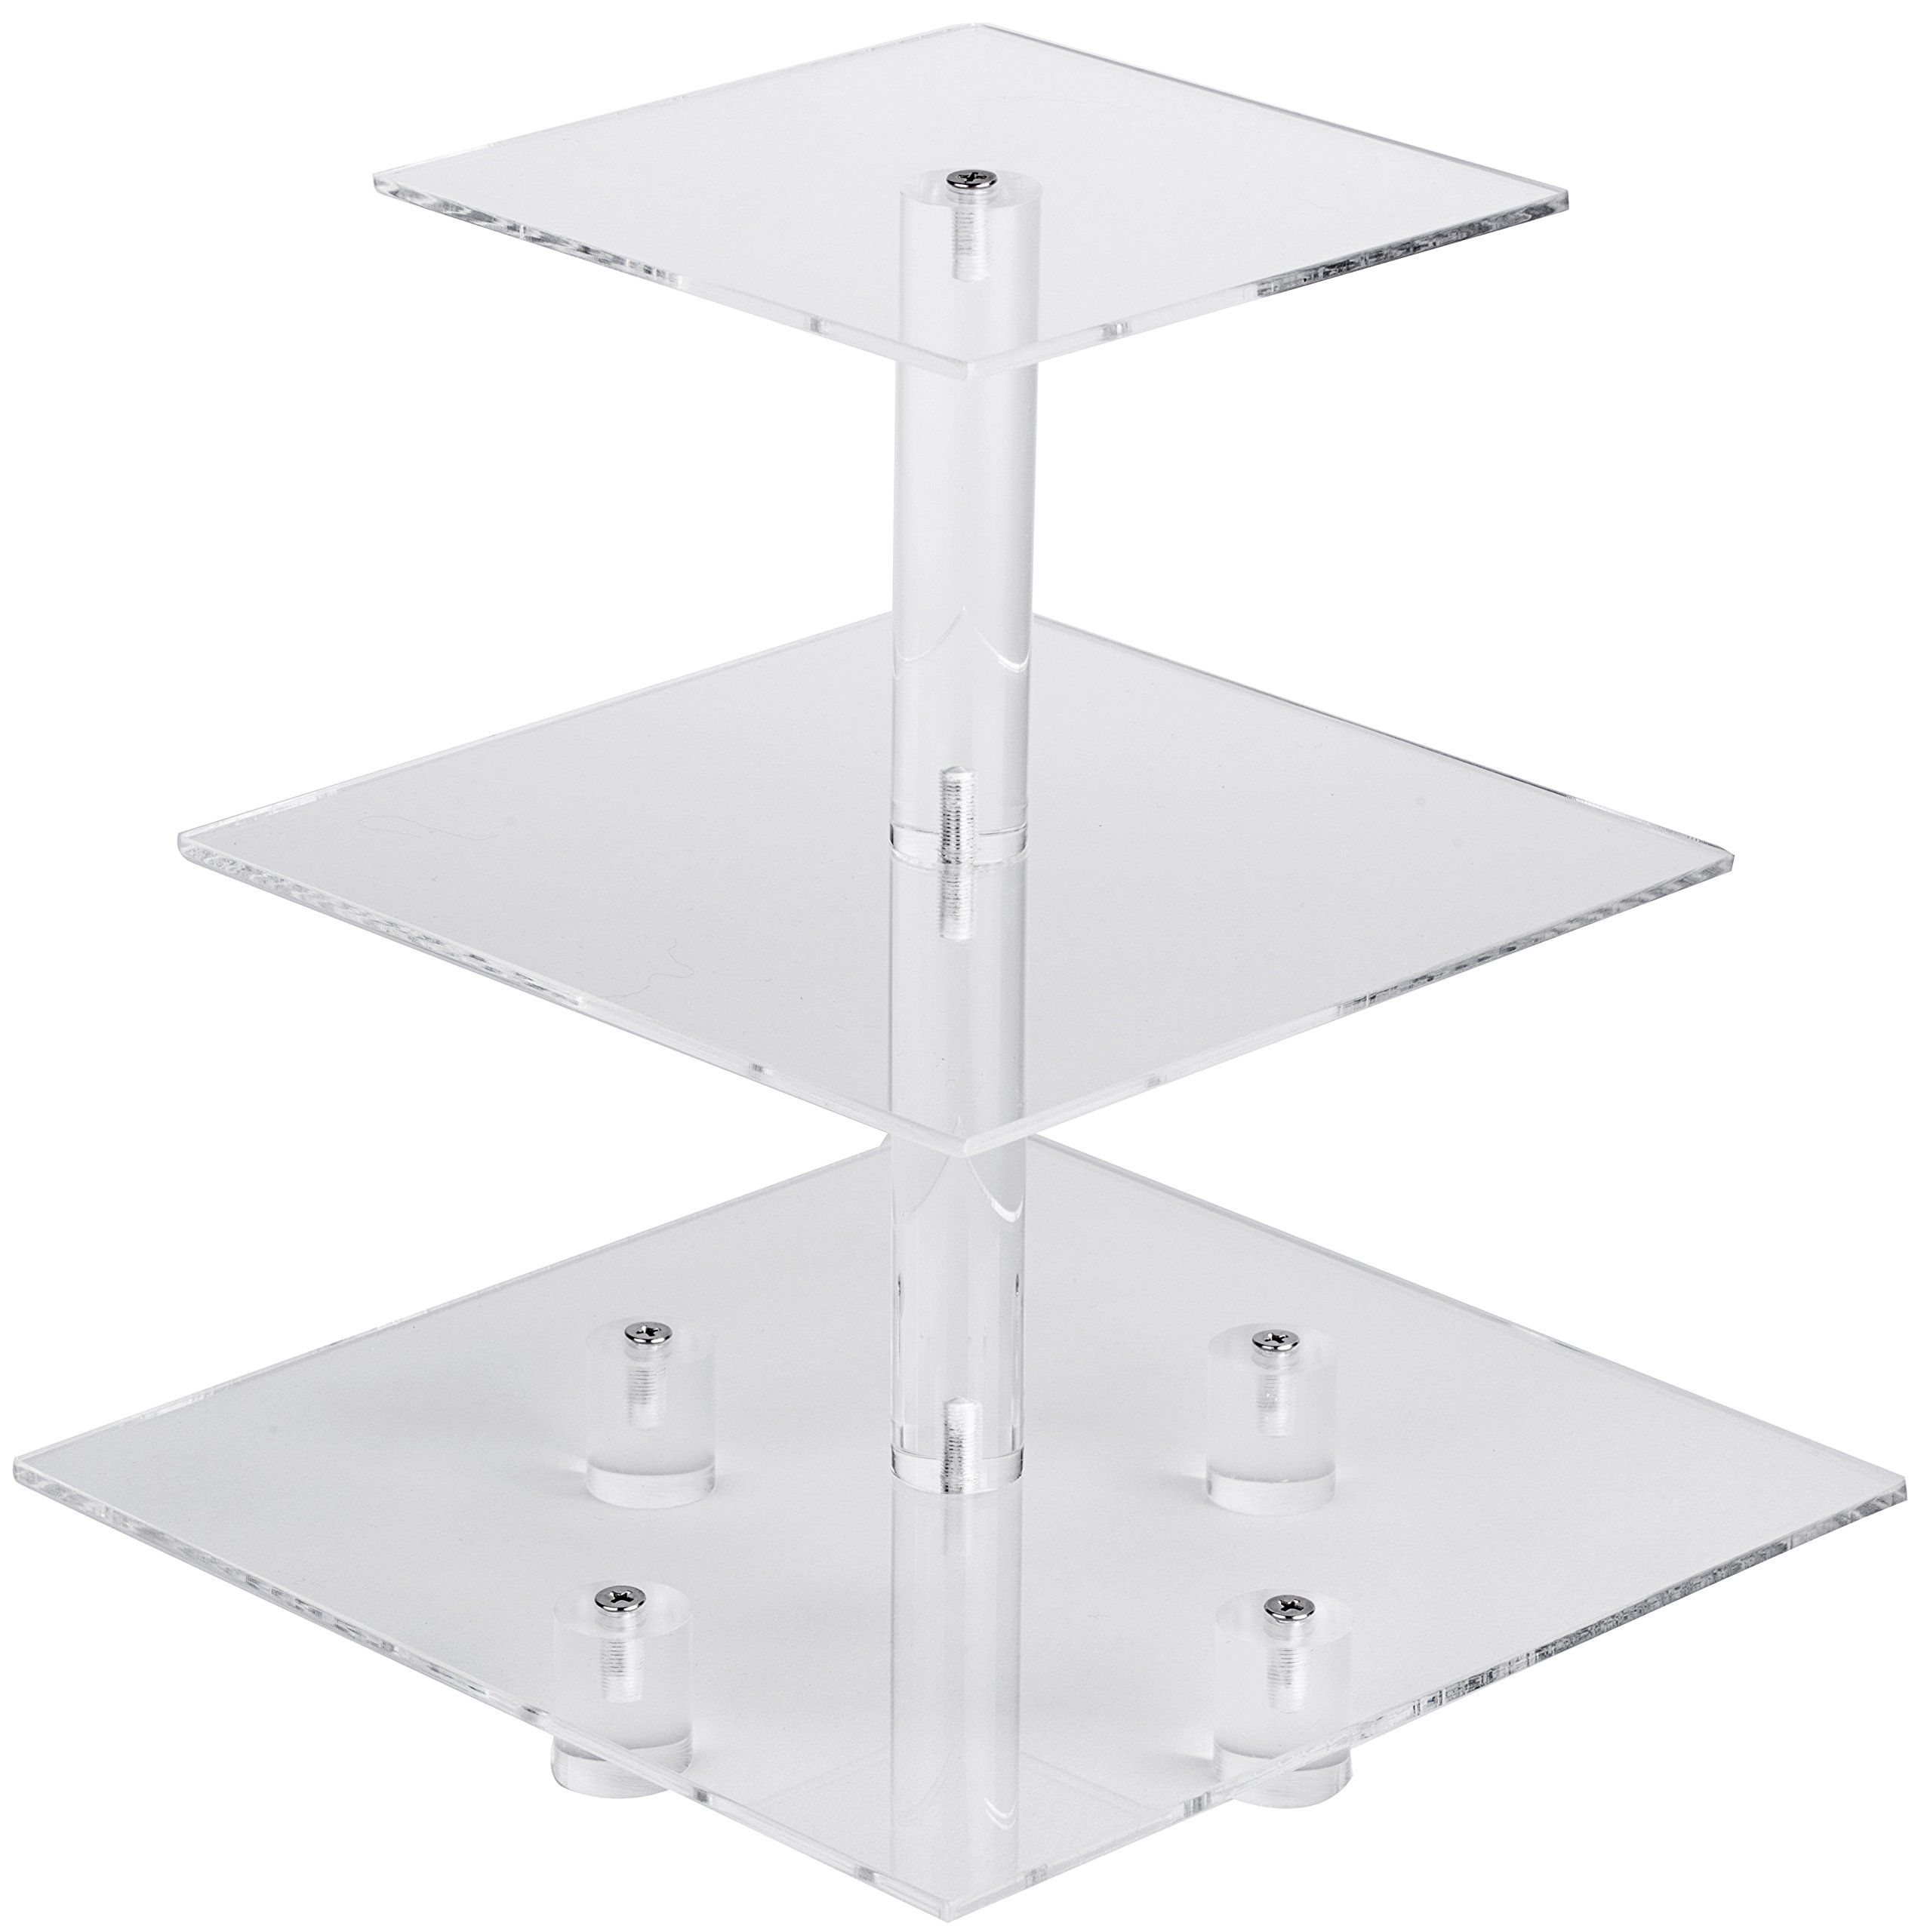 YestBuy 3 Tier Maypole Square Wedding Party Tree Tower Acrylic Cupcake Display Stand 3 Tier Square with Base(4.7'' between 2 layers)